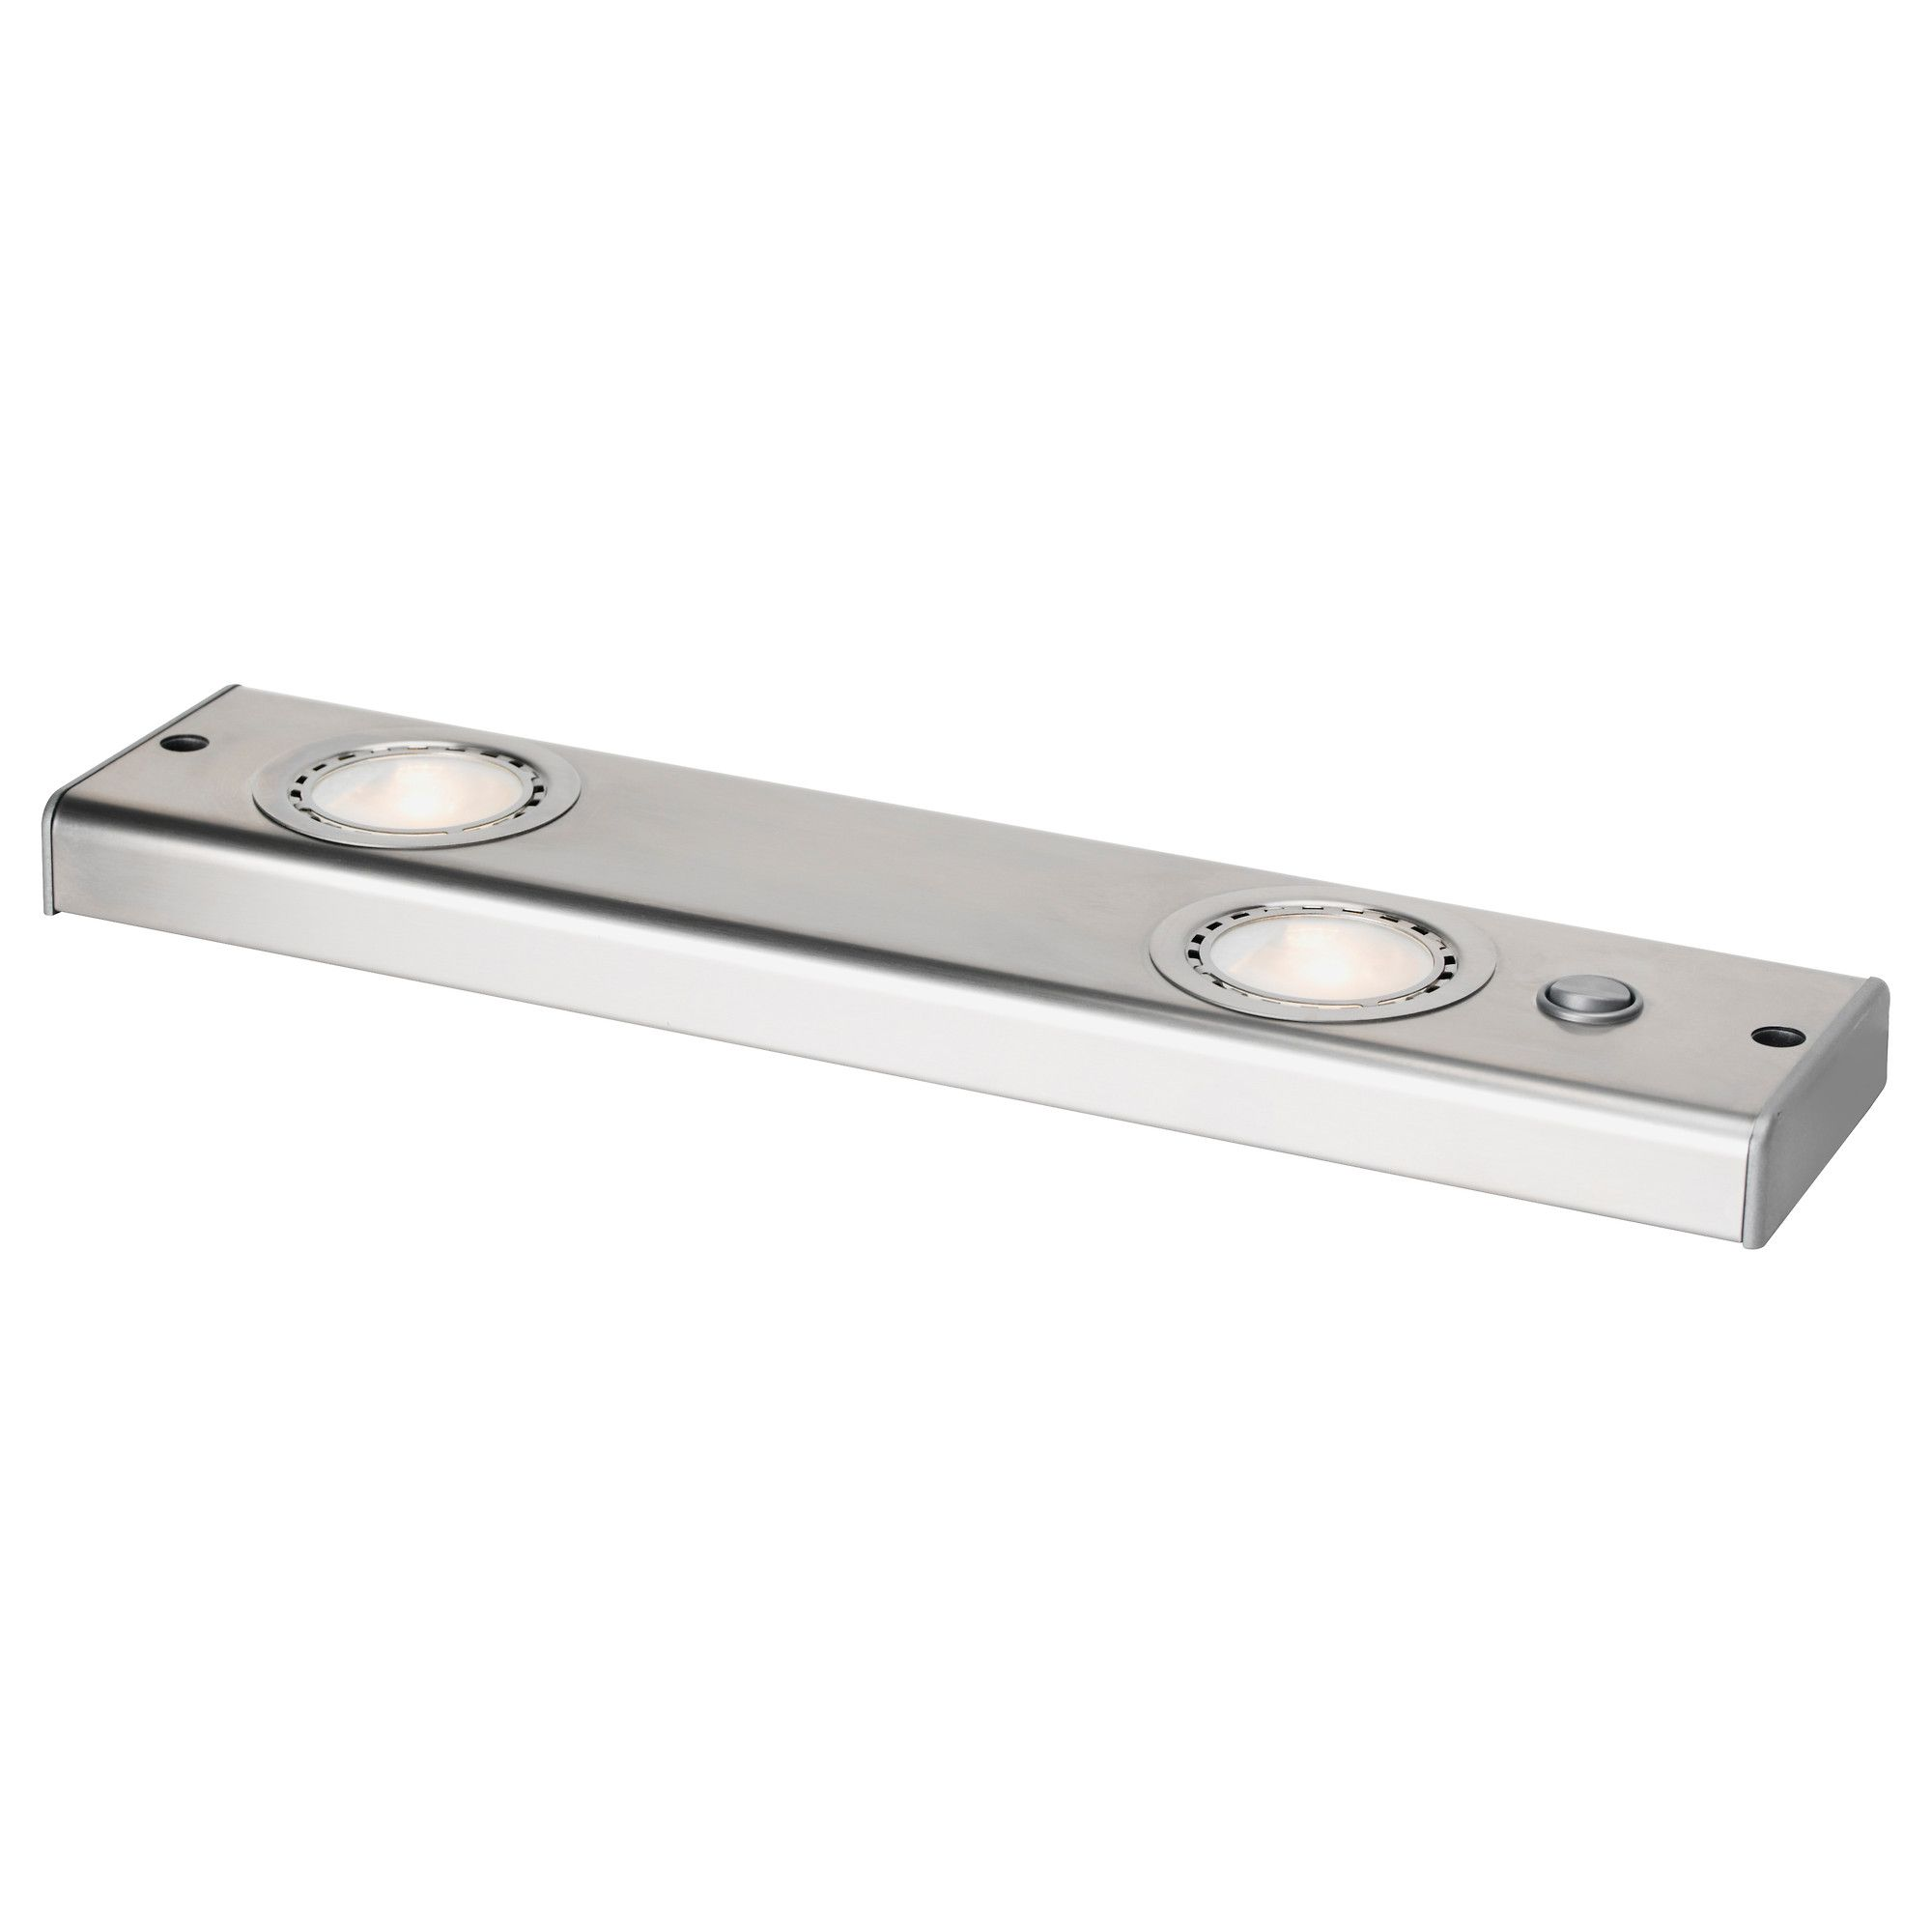 Stainless Steel Kitchen Light Under Cabinet Lighting From Ikea Grundtal Countertop